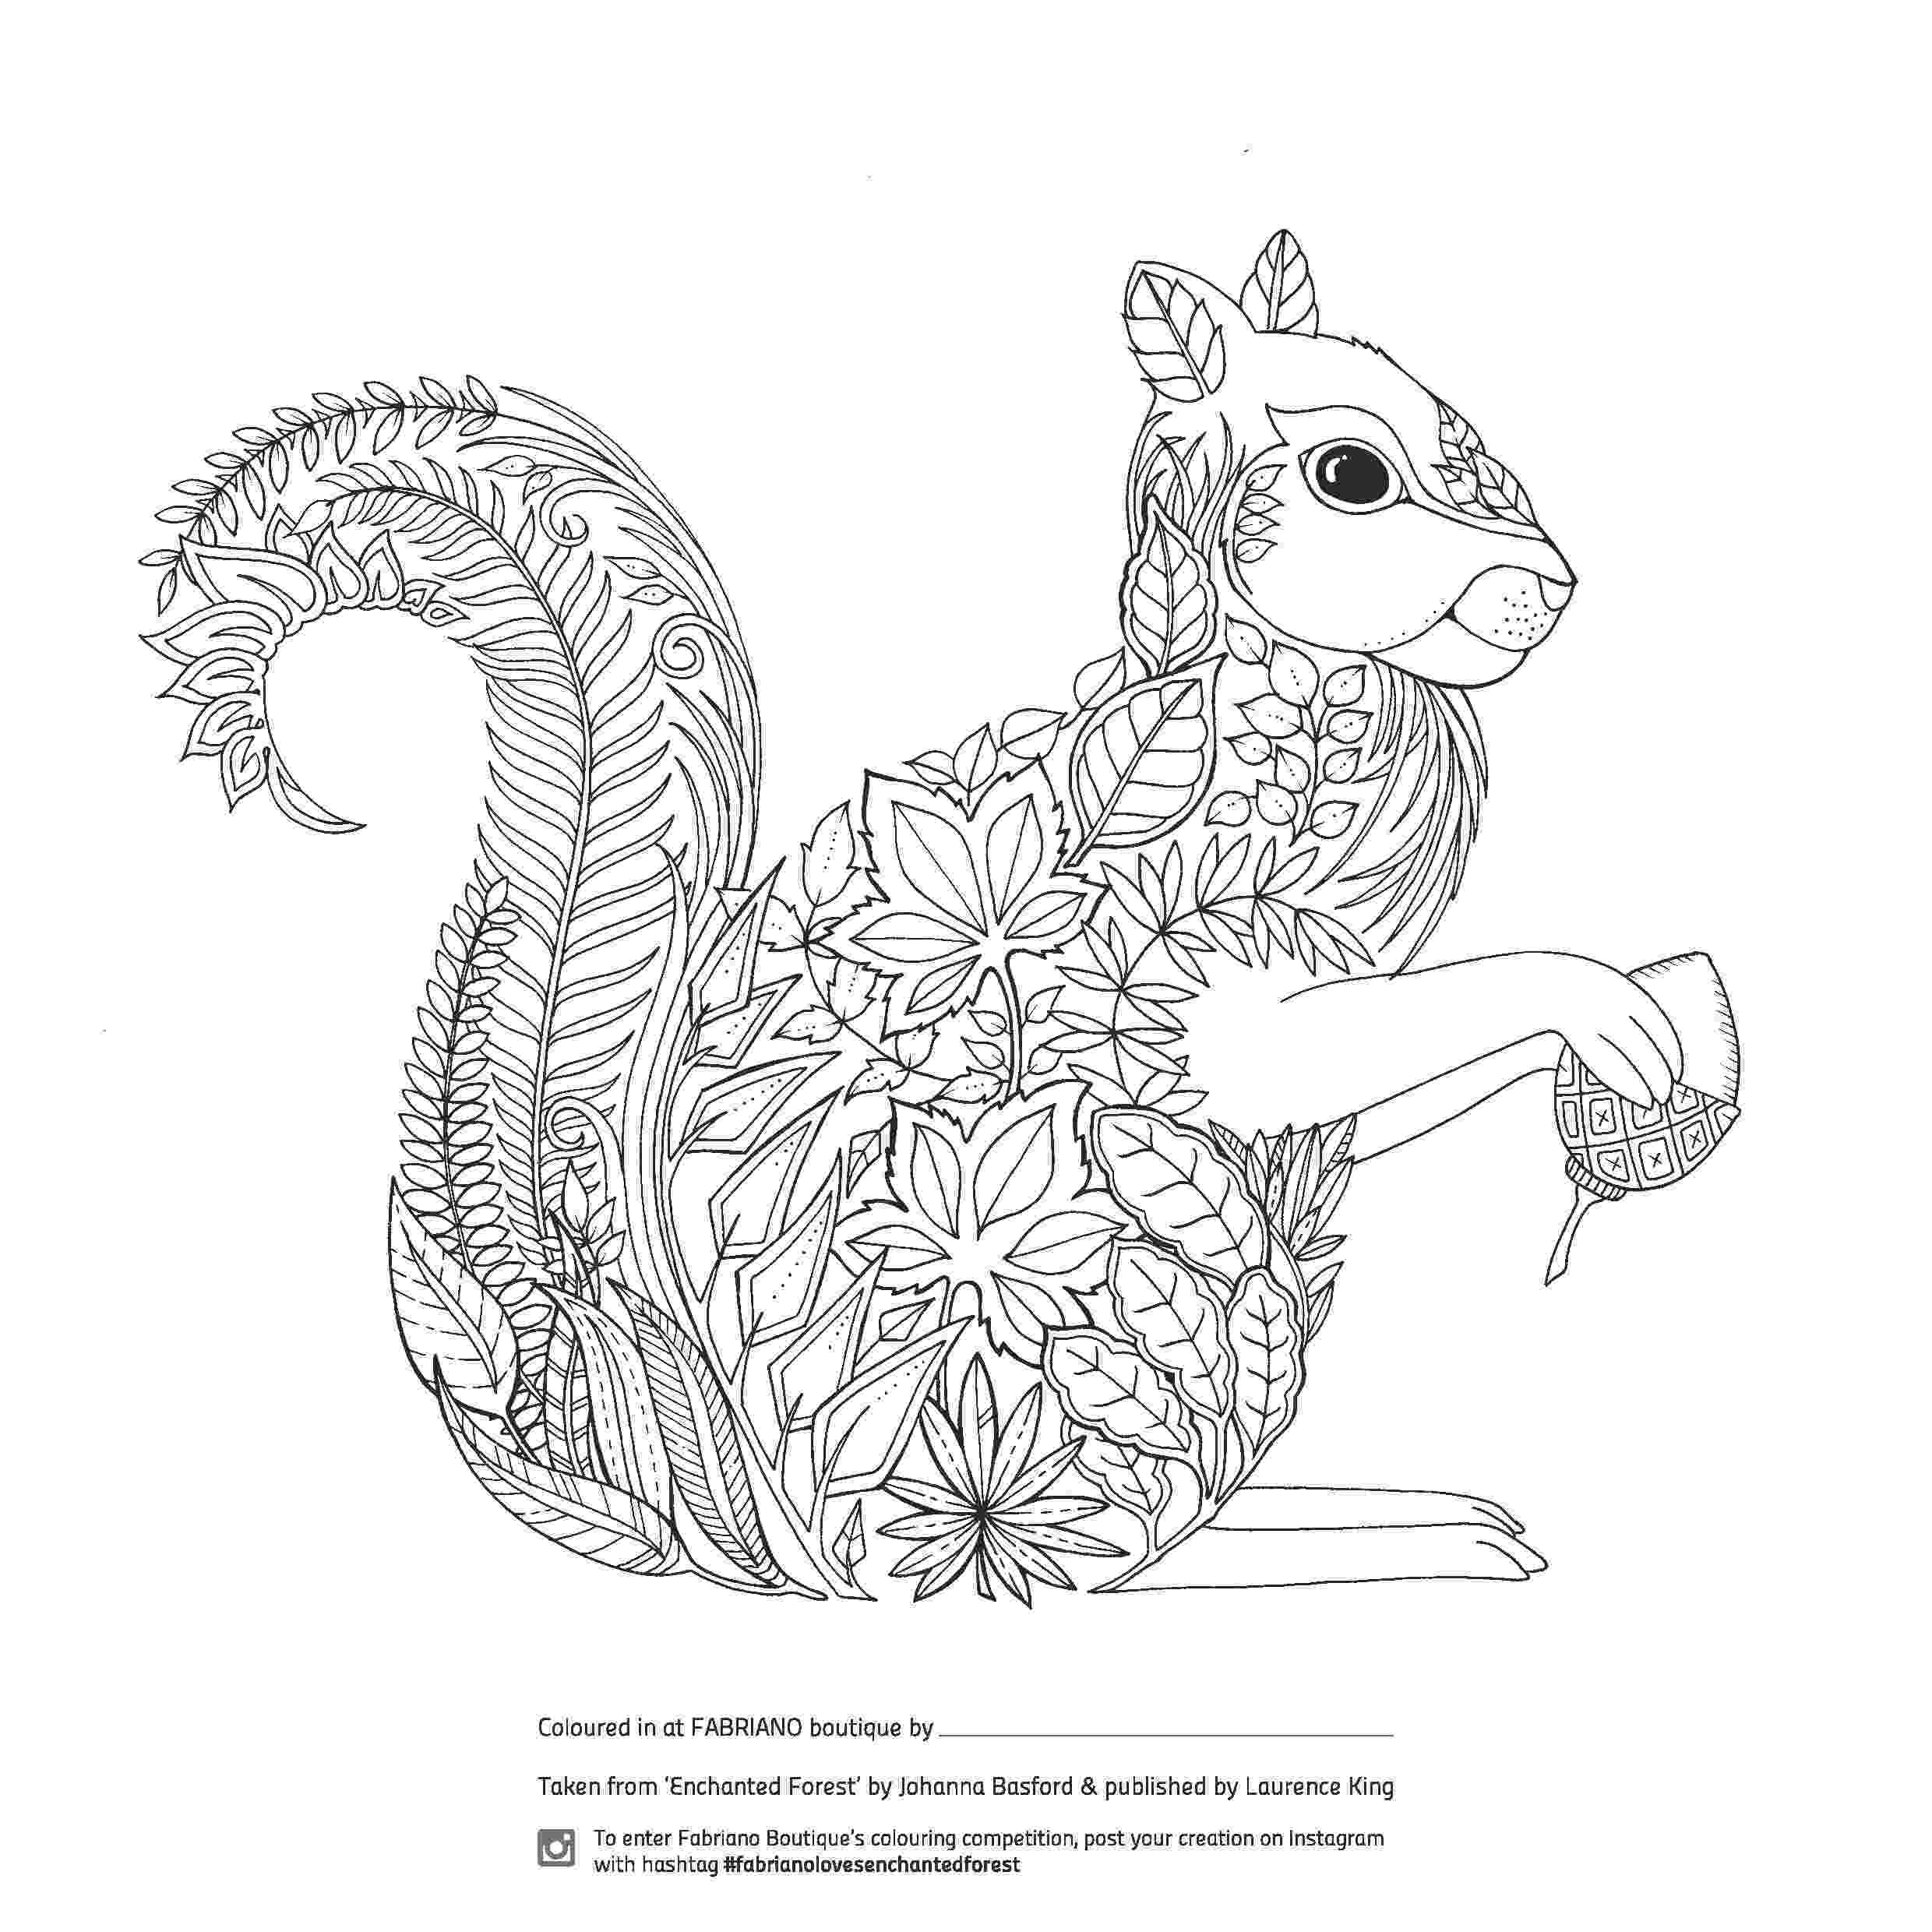 forest coloring sheets winter forest coloring pages to download and print for free forest coloring sheets